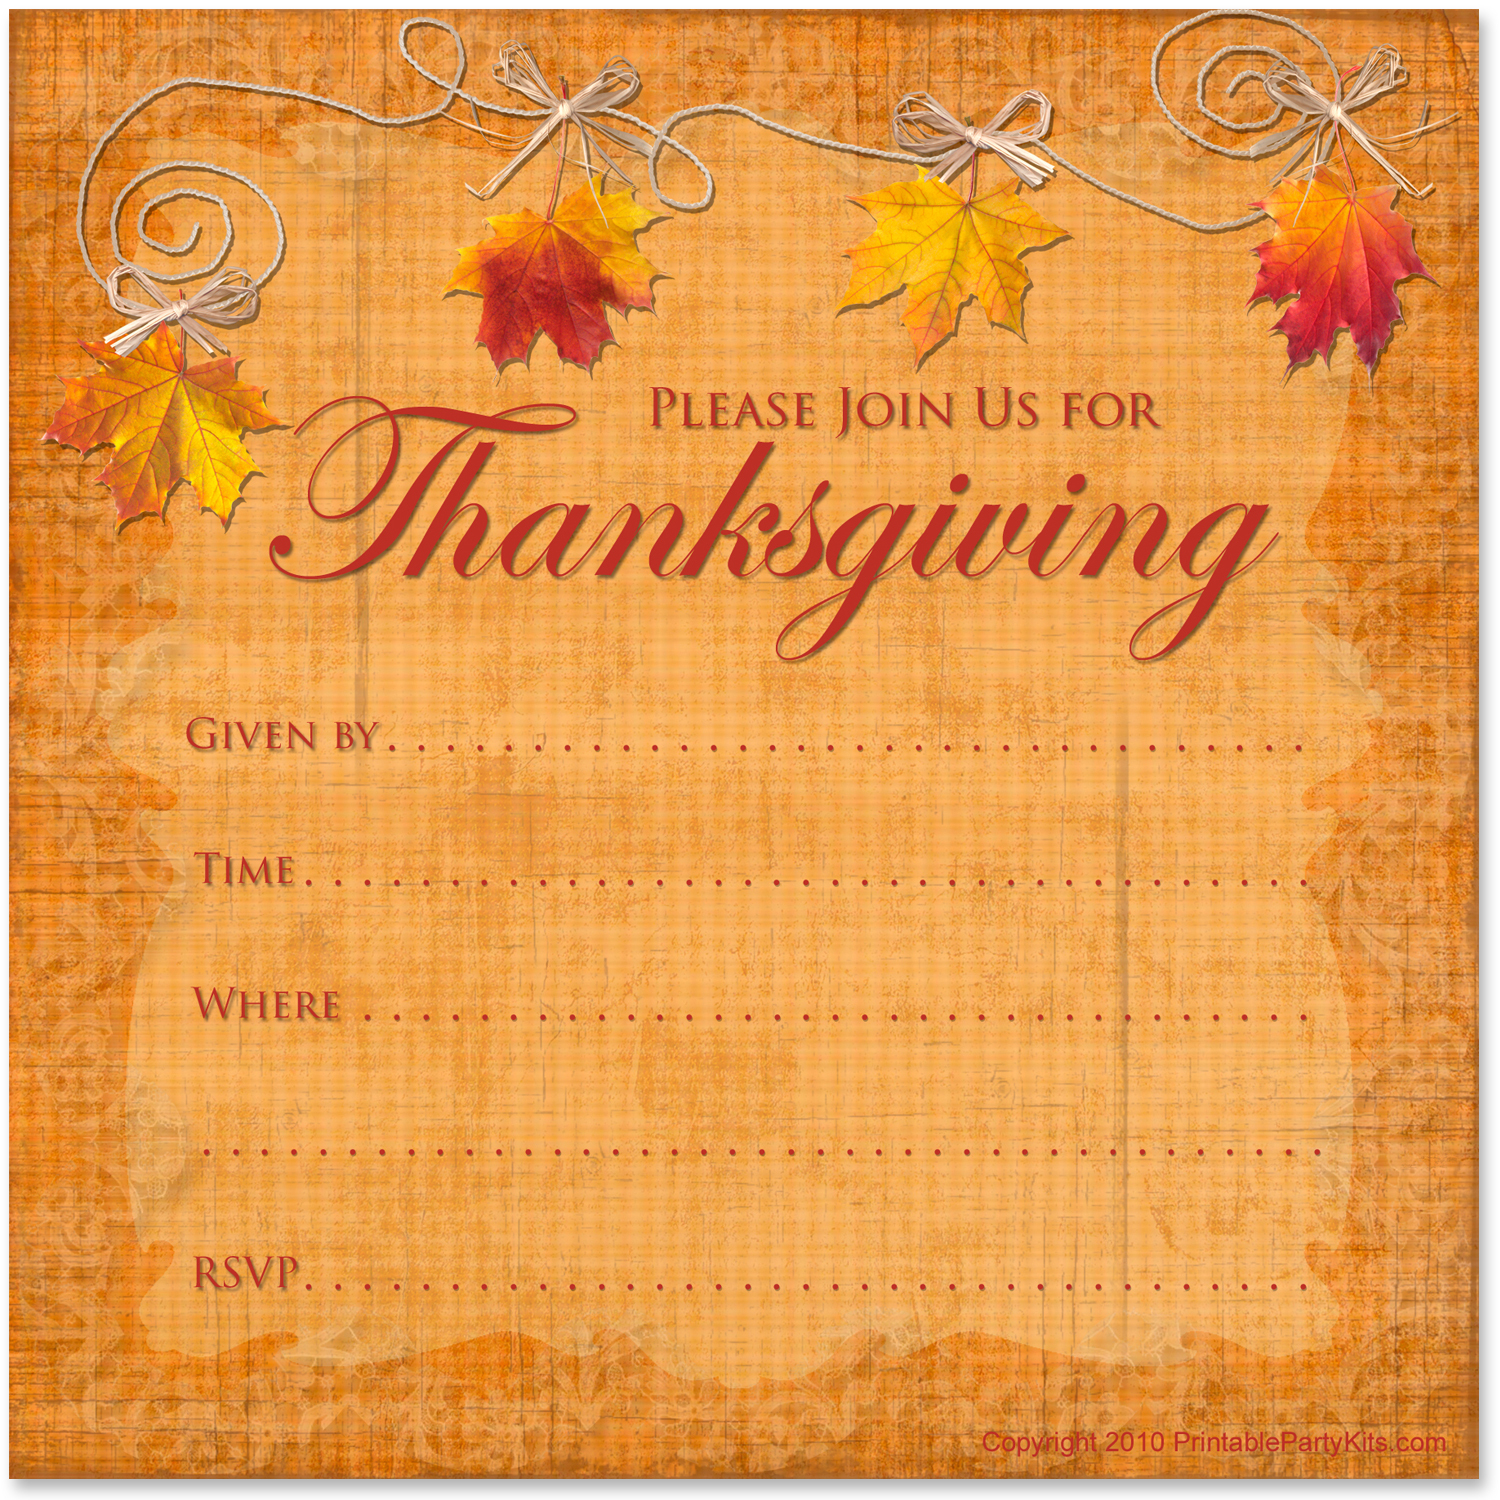 Can't Find Substitution For Tag [Post.body]--> Printable - Free Printable Thanksgiving Dinner Invitation Templates